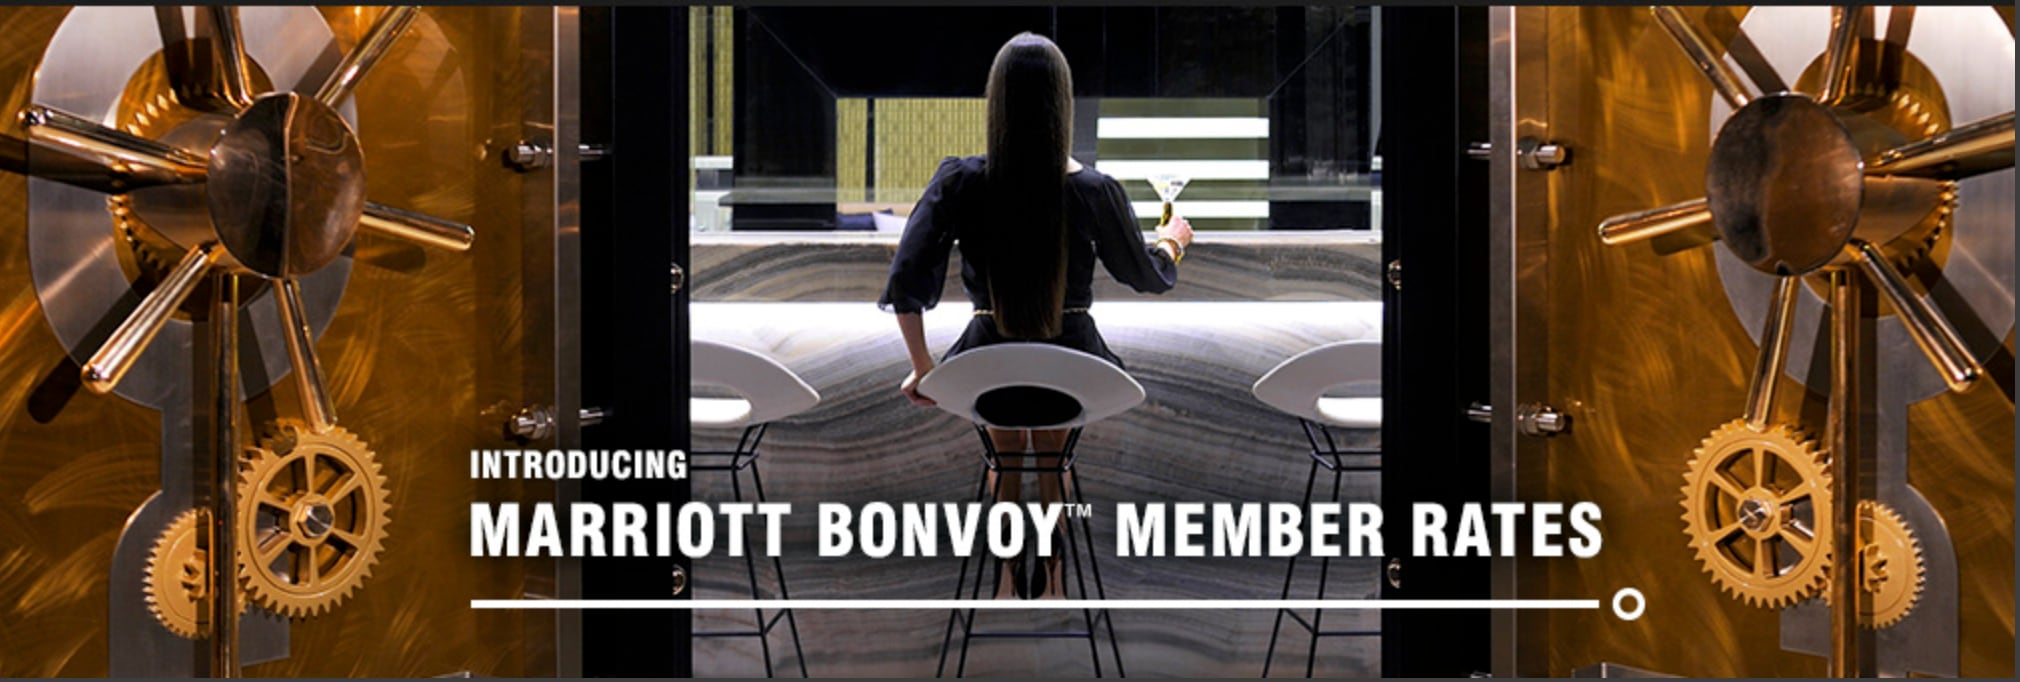 Woman sitting in a bar | Link to Marriott Bonvoy™ member rates page